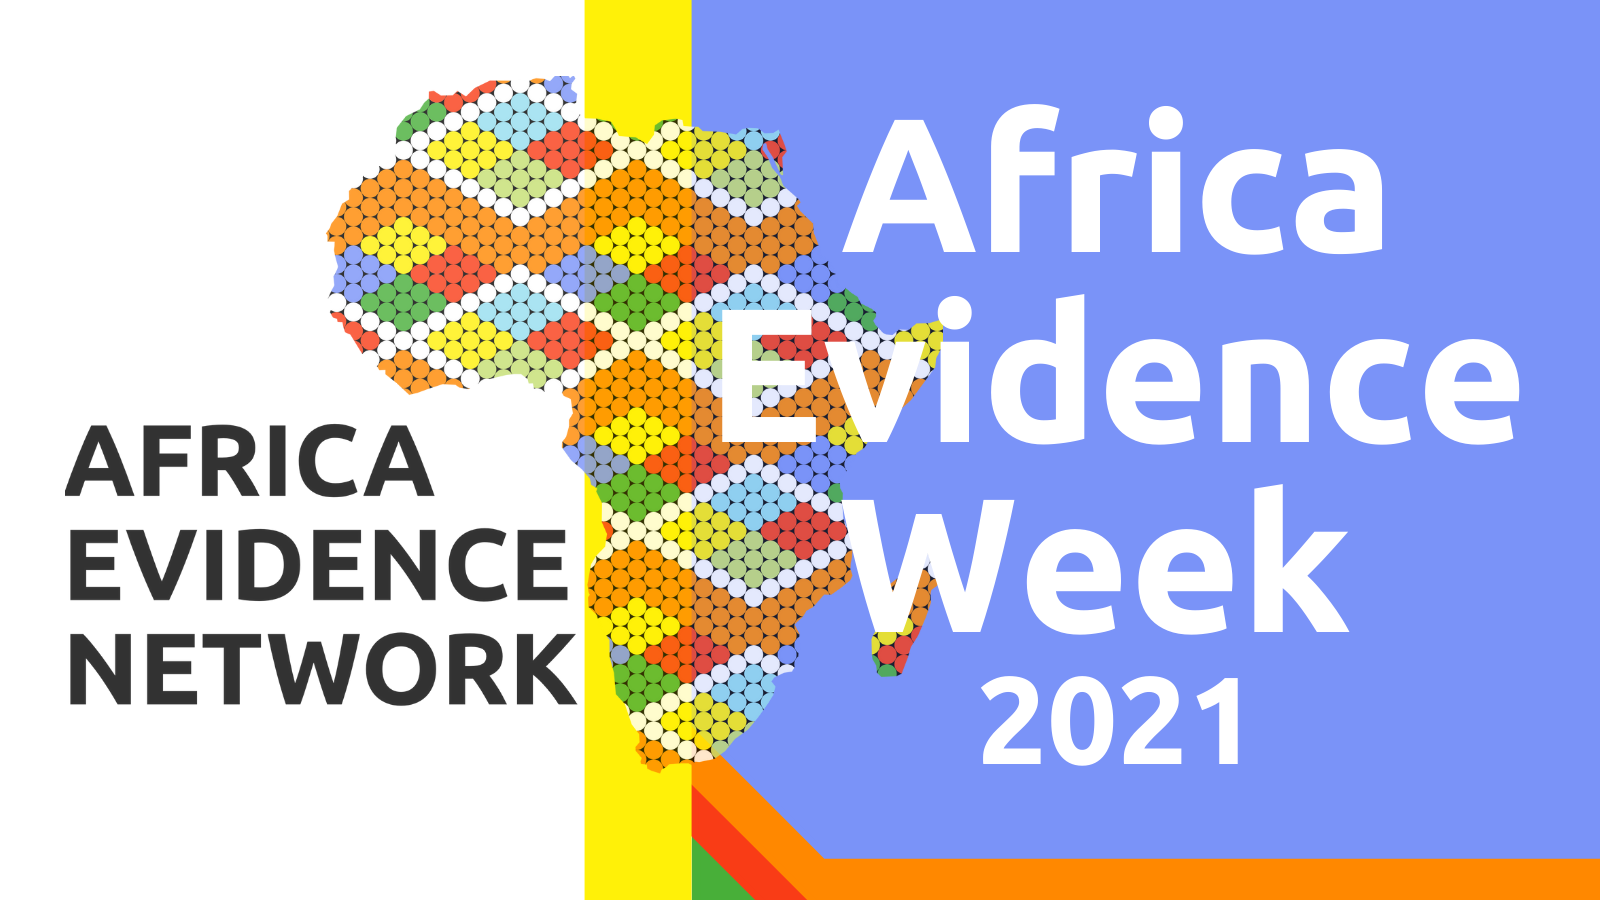 Community, passion and leadership: standing in awe of what Africa Evidence Week 2021 was